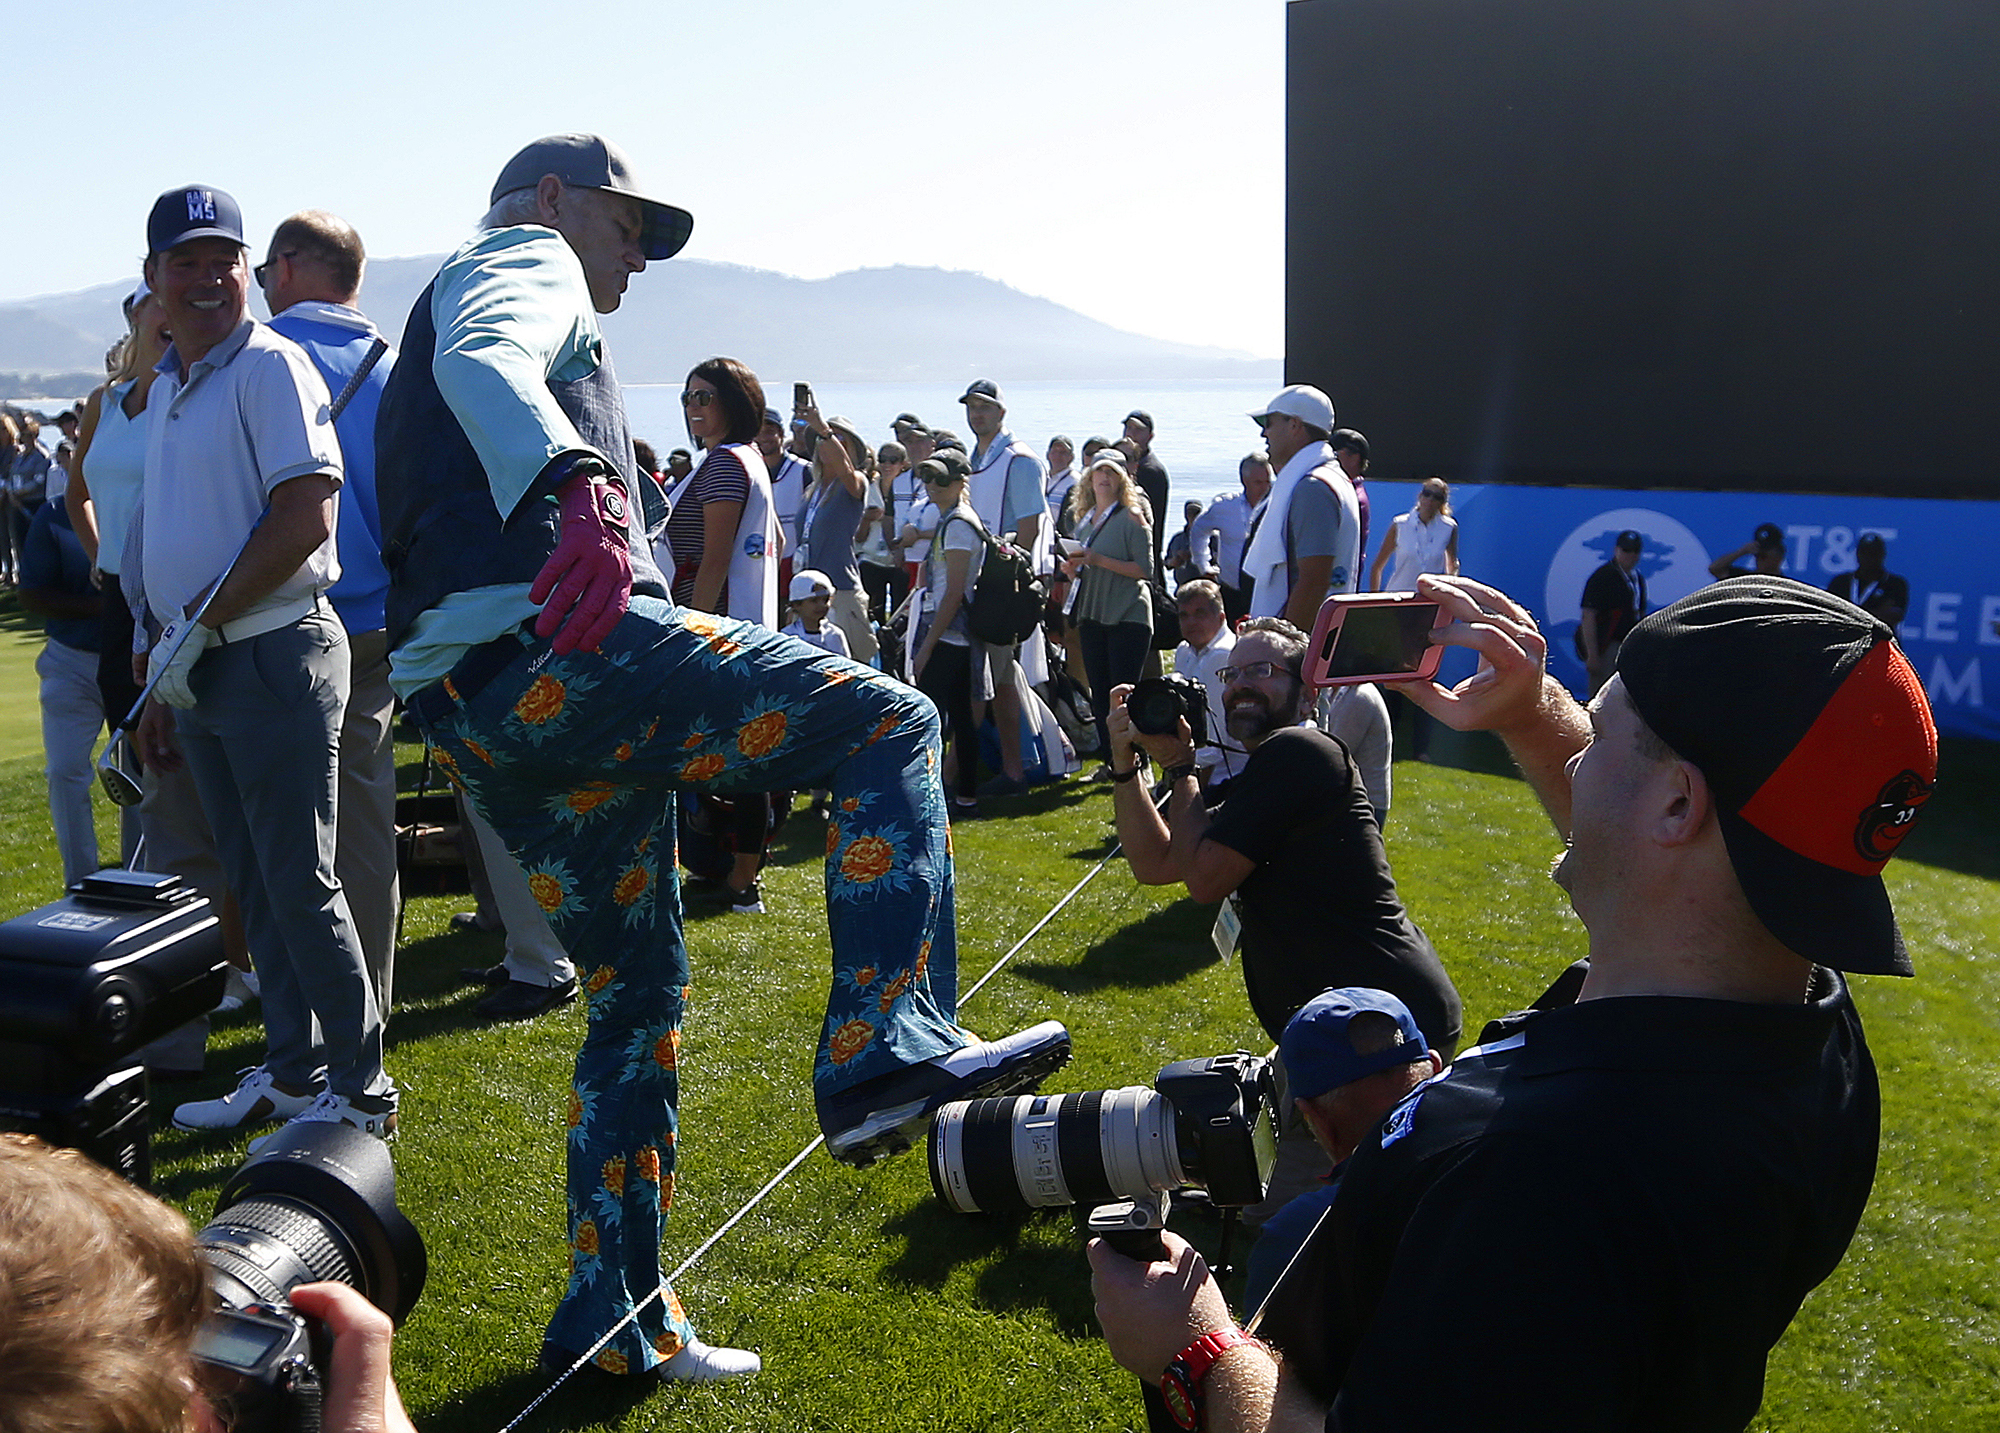 Phil Mickelson continues his West Coast run at Pebble Beach Pro Am